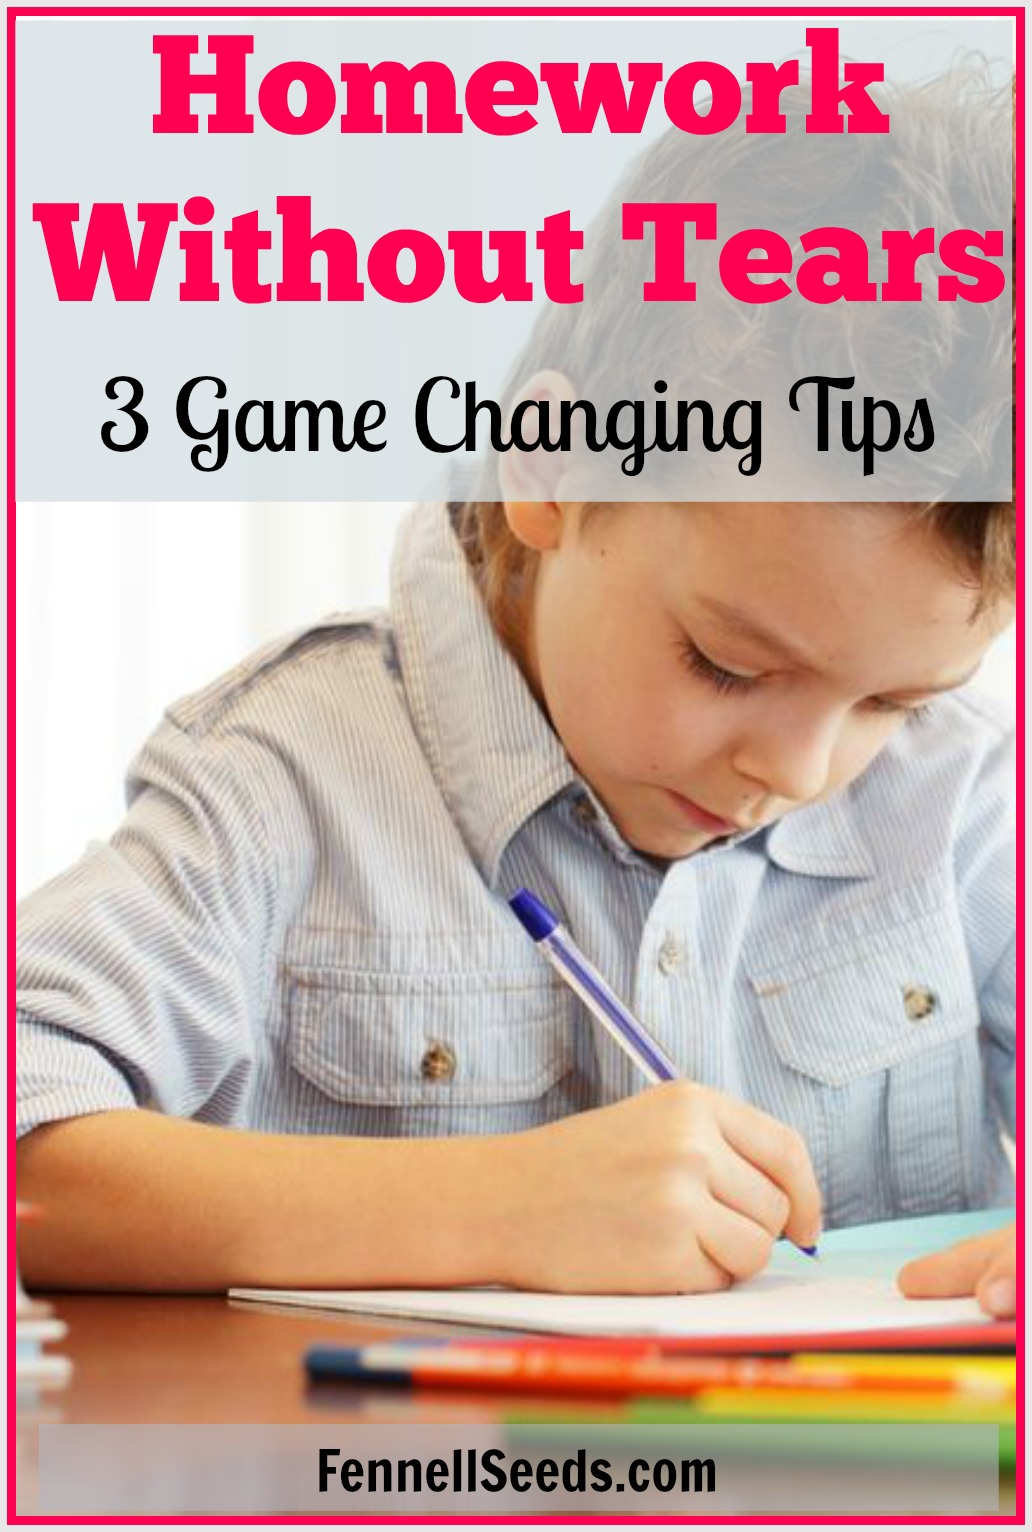 Want Homework Without Tears 3 Game Changing Tips